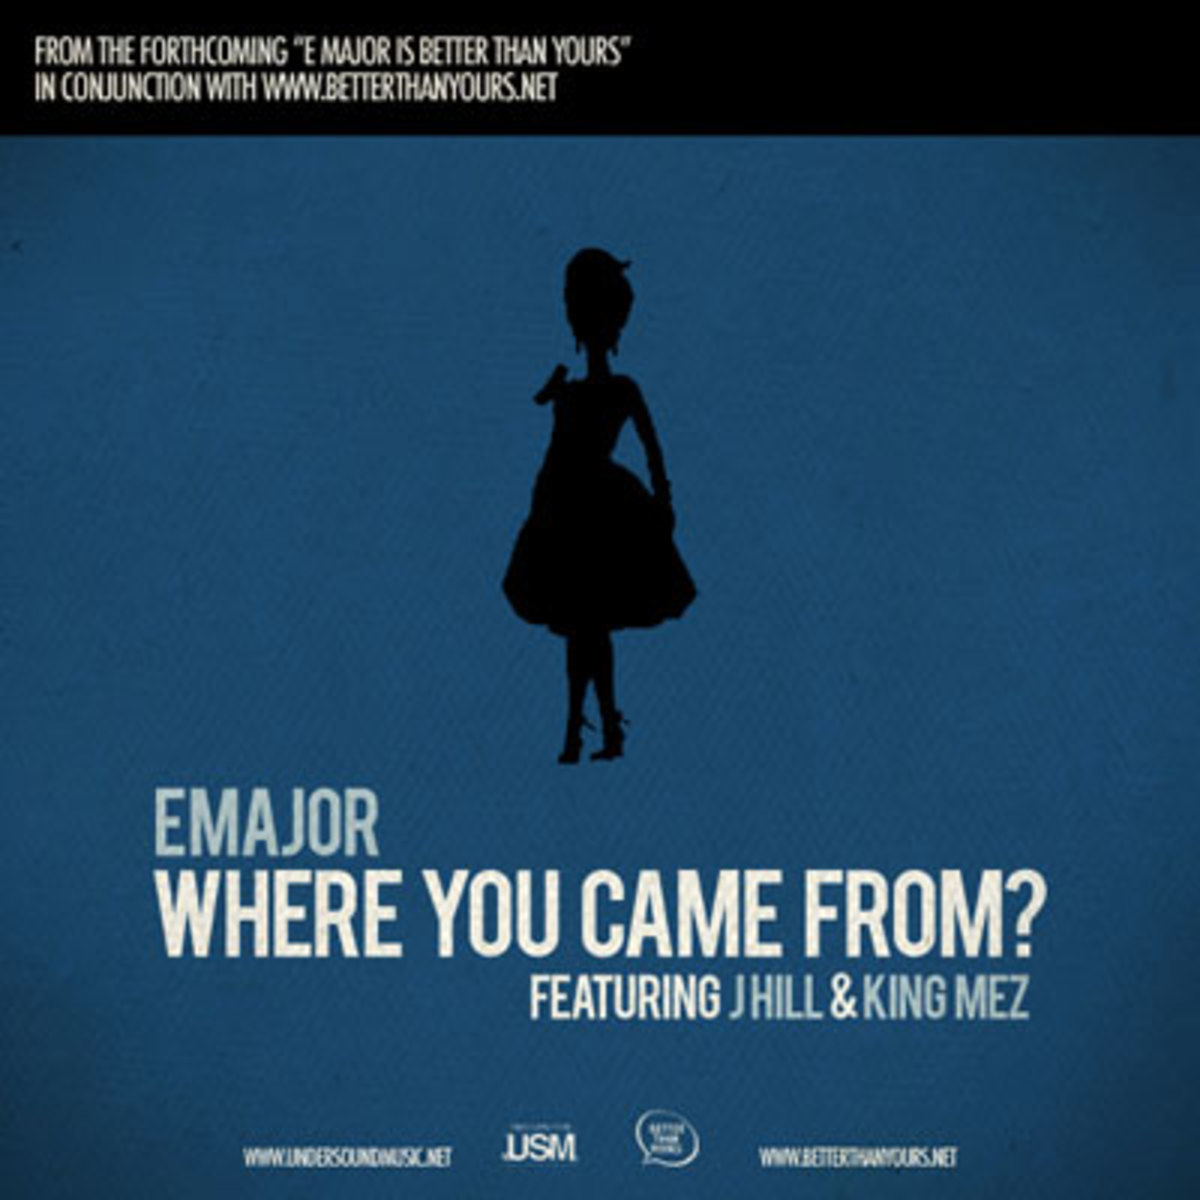 emajor-whereyoucamefrom.jpg